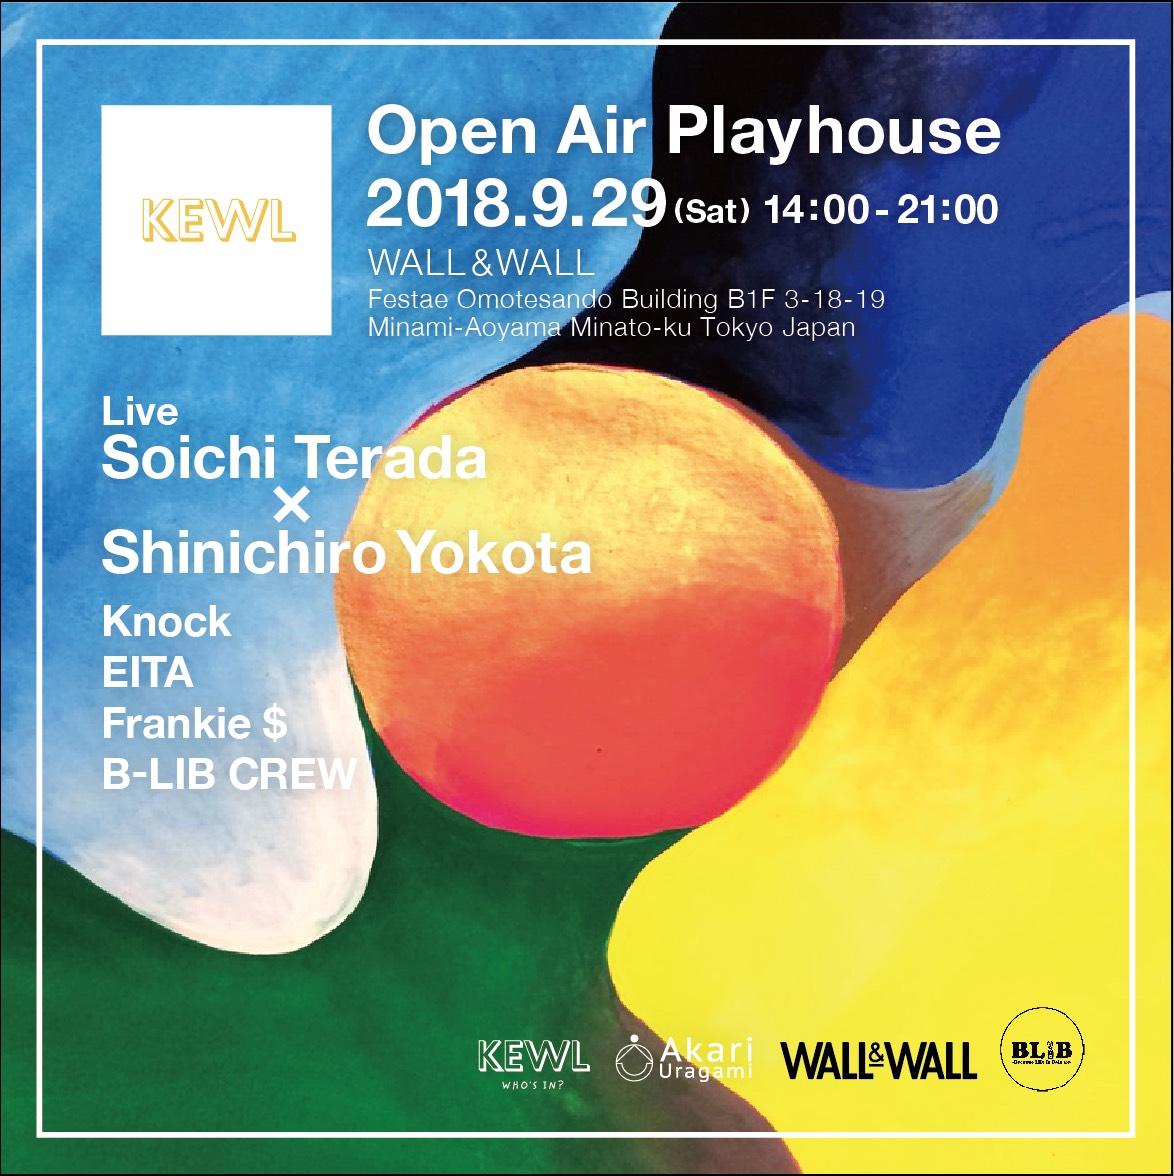 KEWL - Open Air Playhouse - w/ Soichi Terada x Shinichiro Yokota